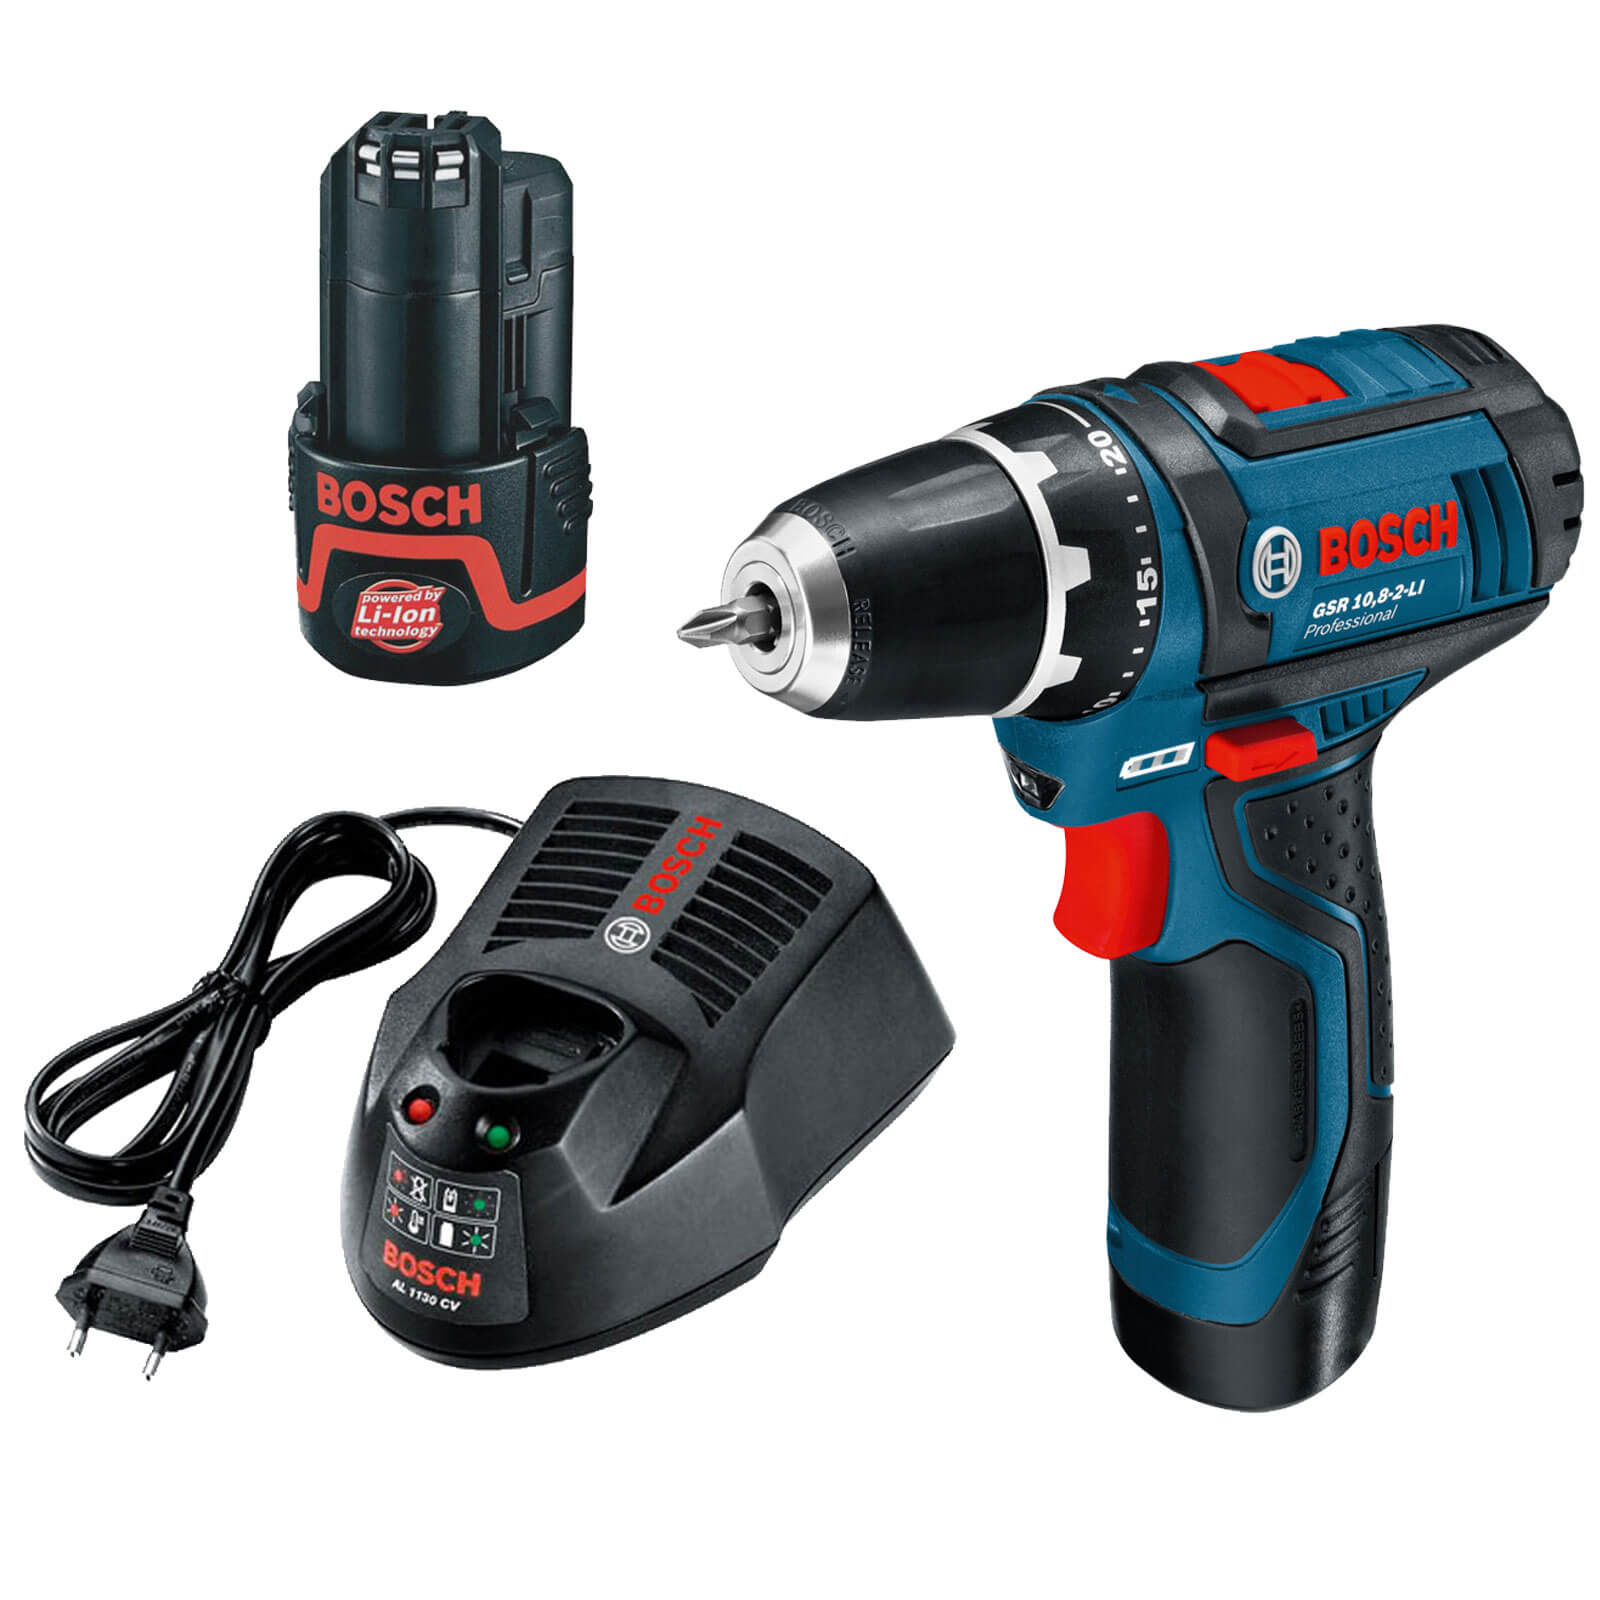 bosch gsr 10 8 2 li cordless heavy duty drill driver. Black Bedroom Furniture Sets. Home Design Ideas